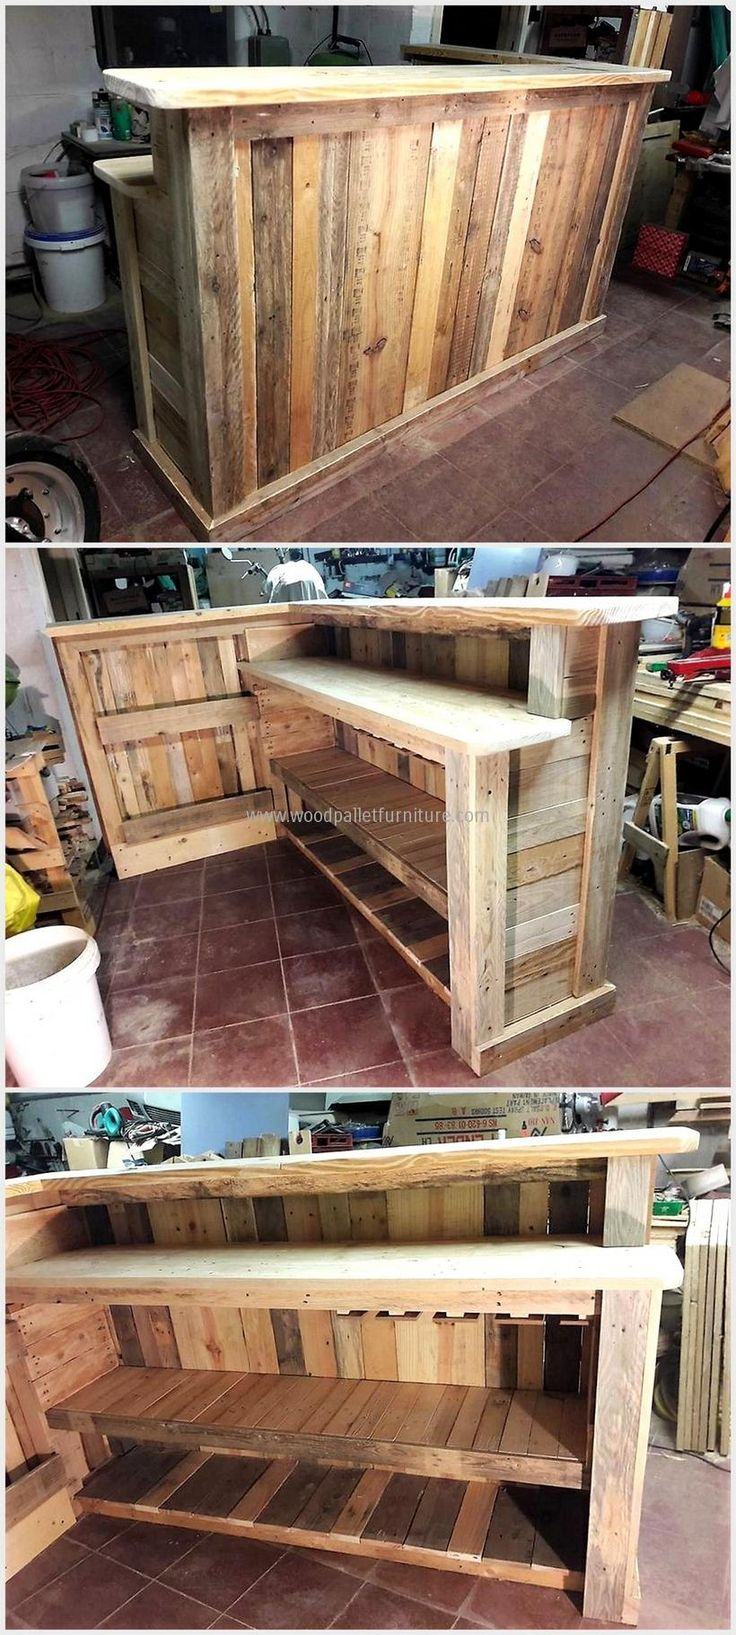 Elegant firepit with unpolished panel of oak wood using ornamental - Cheap Home Furnishing With Wooden Pallets